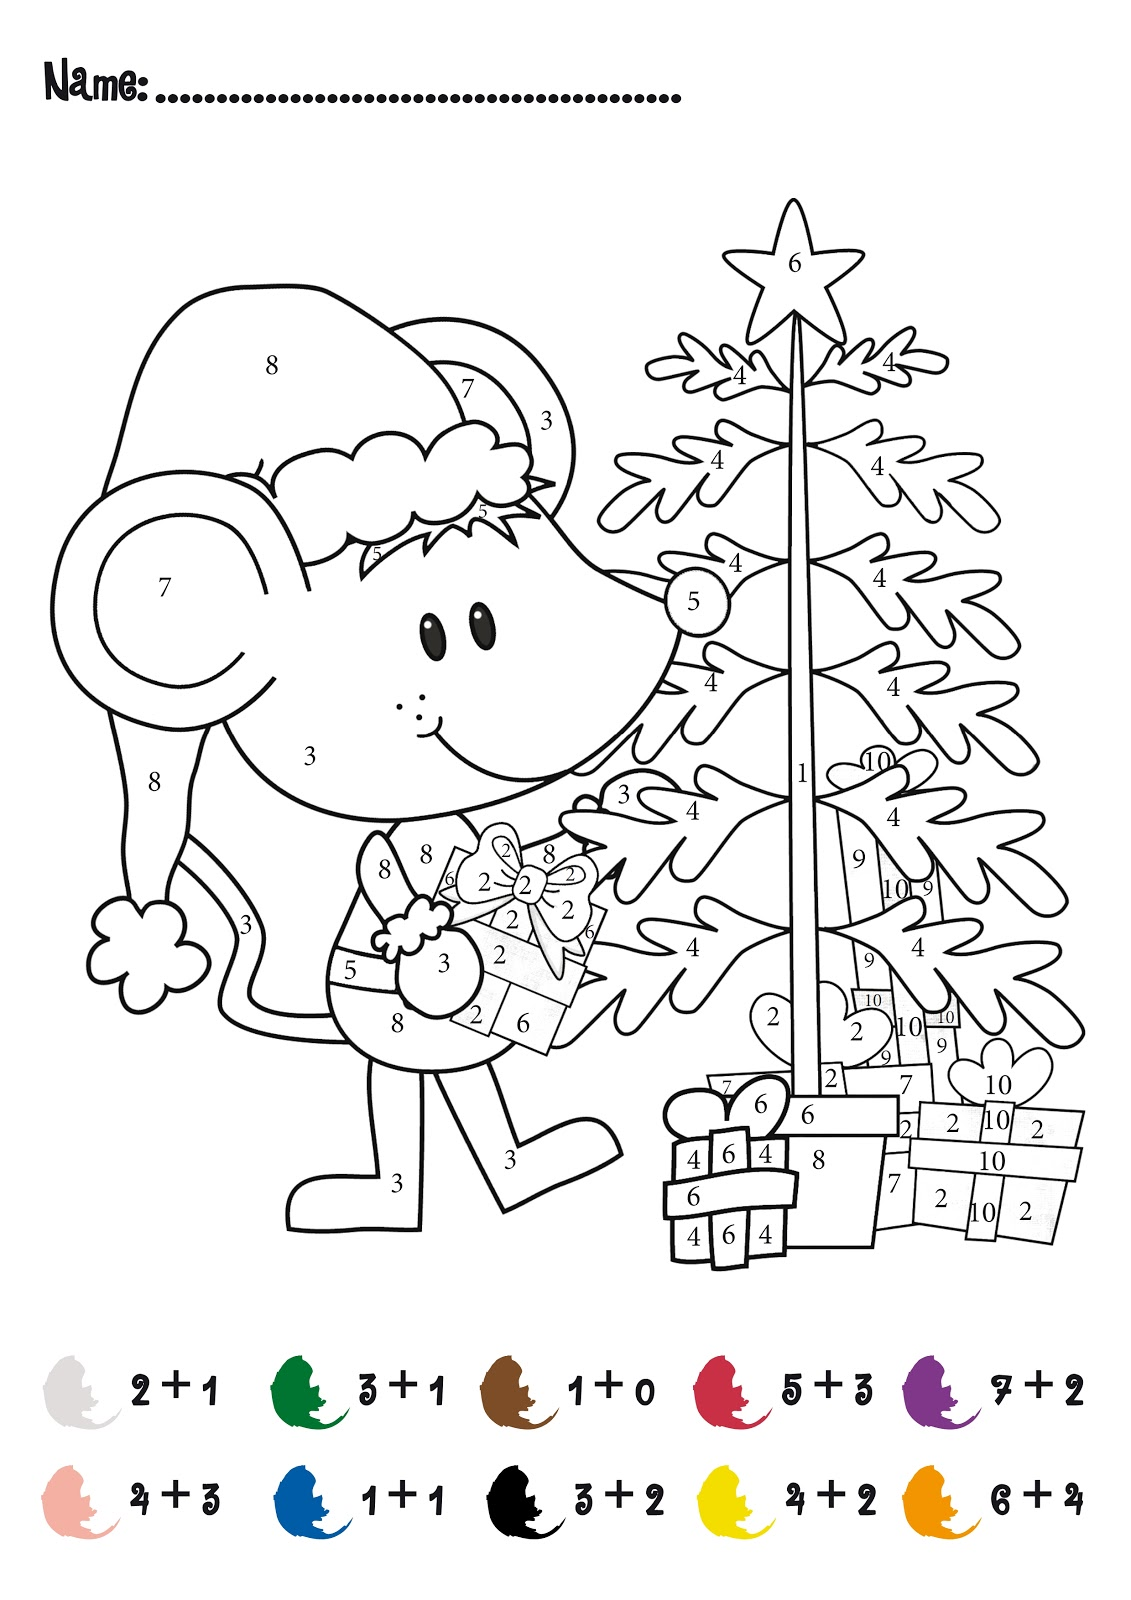 1st grade christmas coloring pages photo - 1